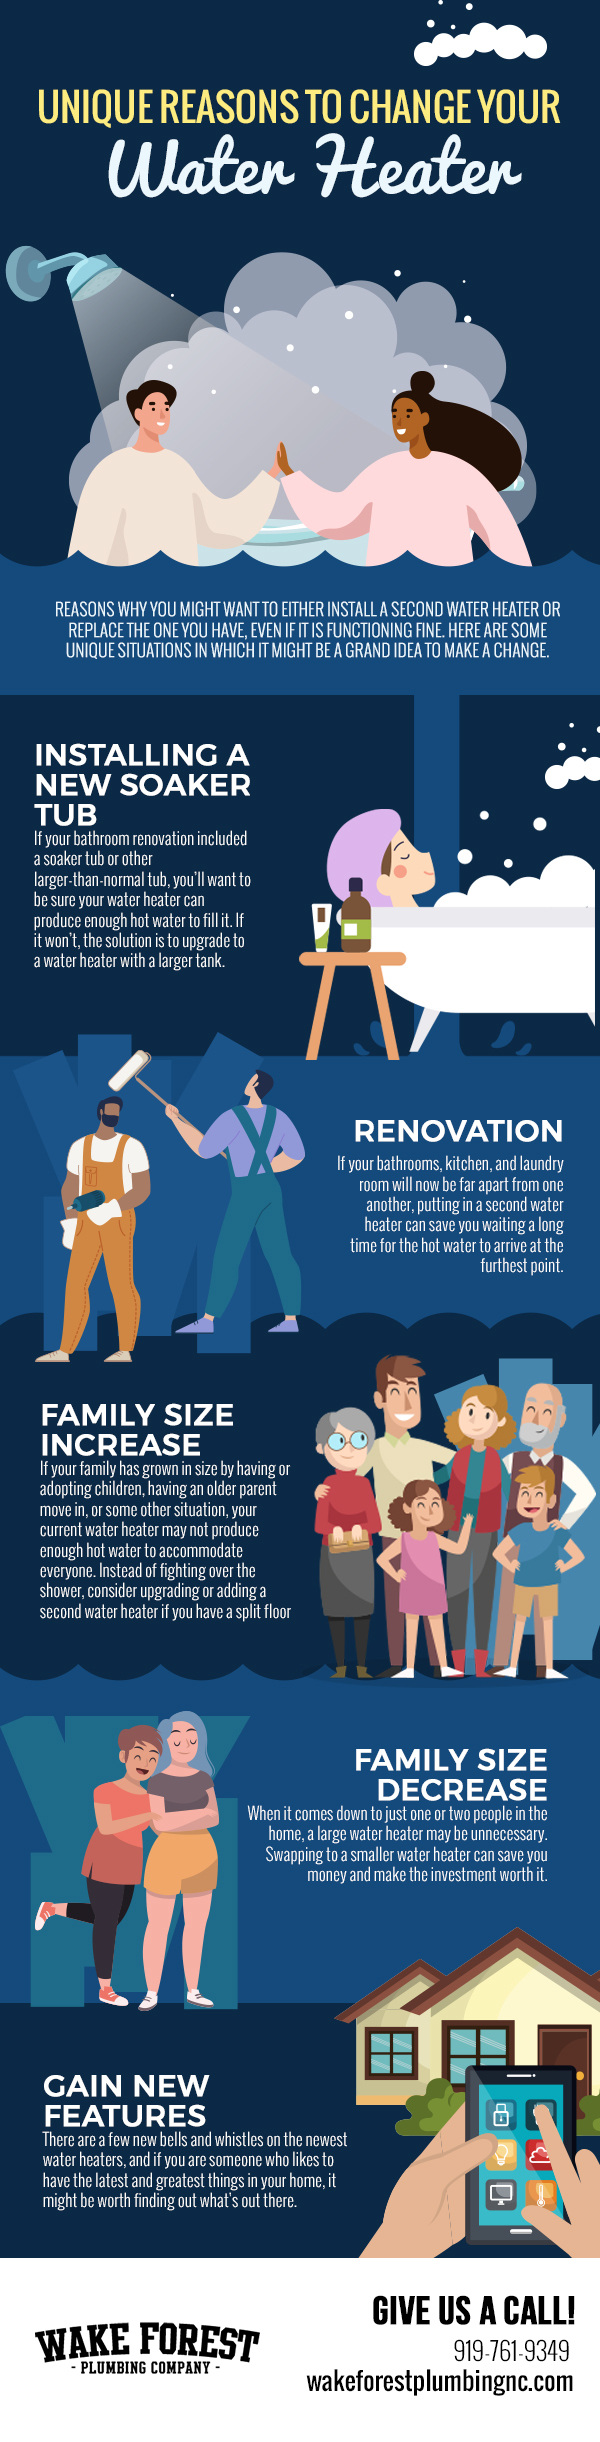 Unique Reasons to Change Your Water Heater [infographic]